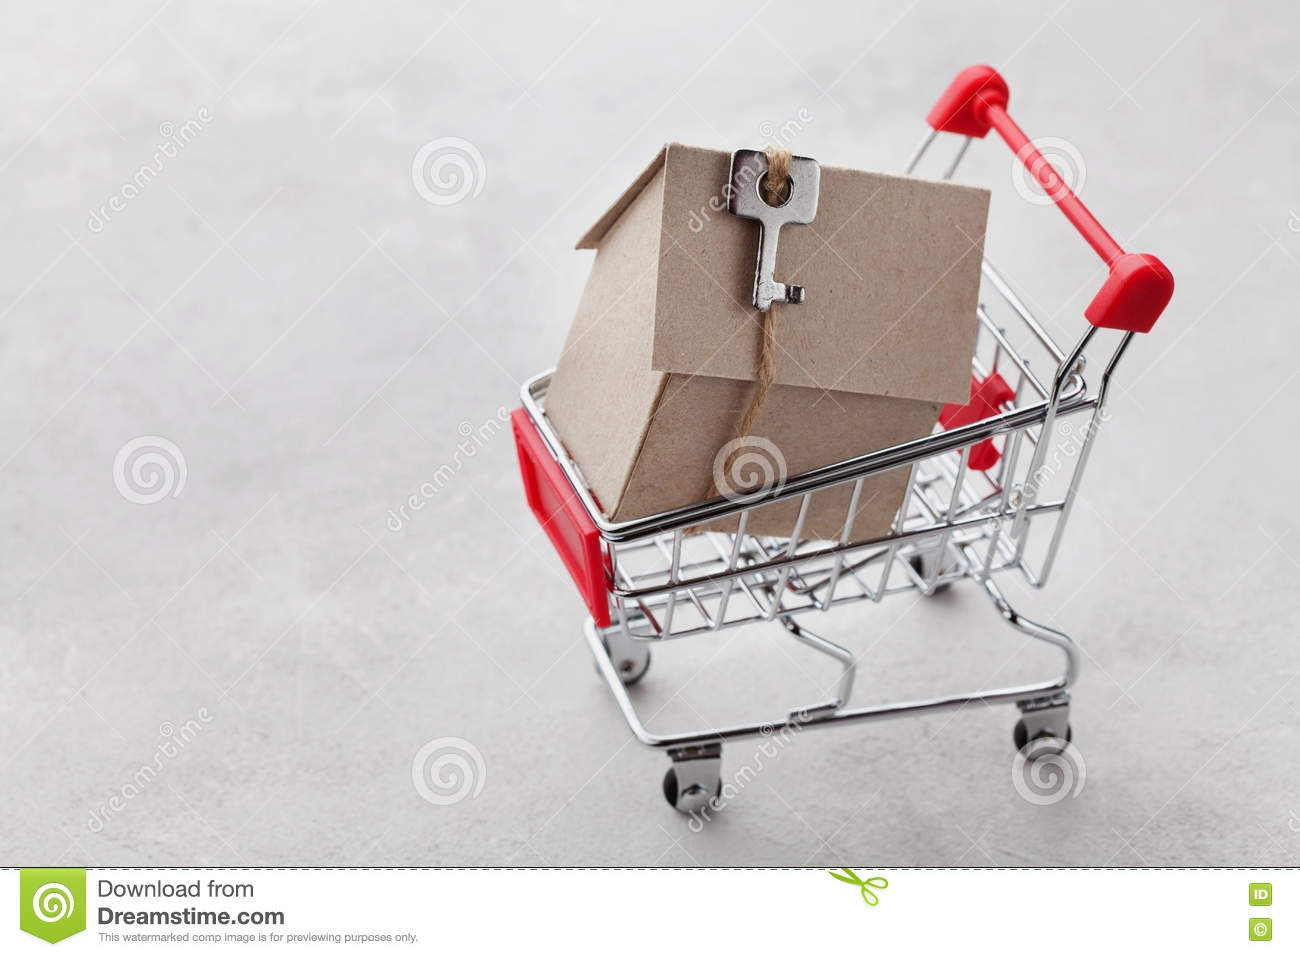 Shopping cart with model of cardboard house on gray background, buying a new home or sale of real estate concept